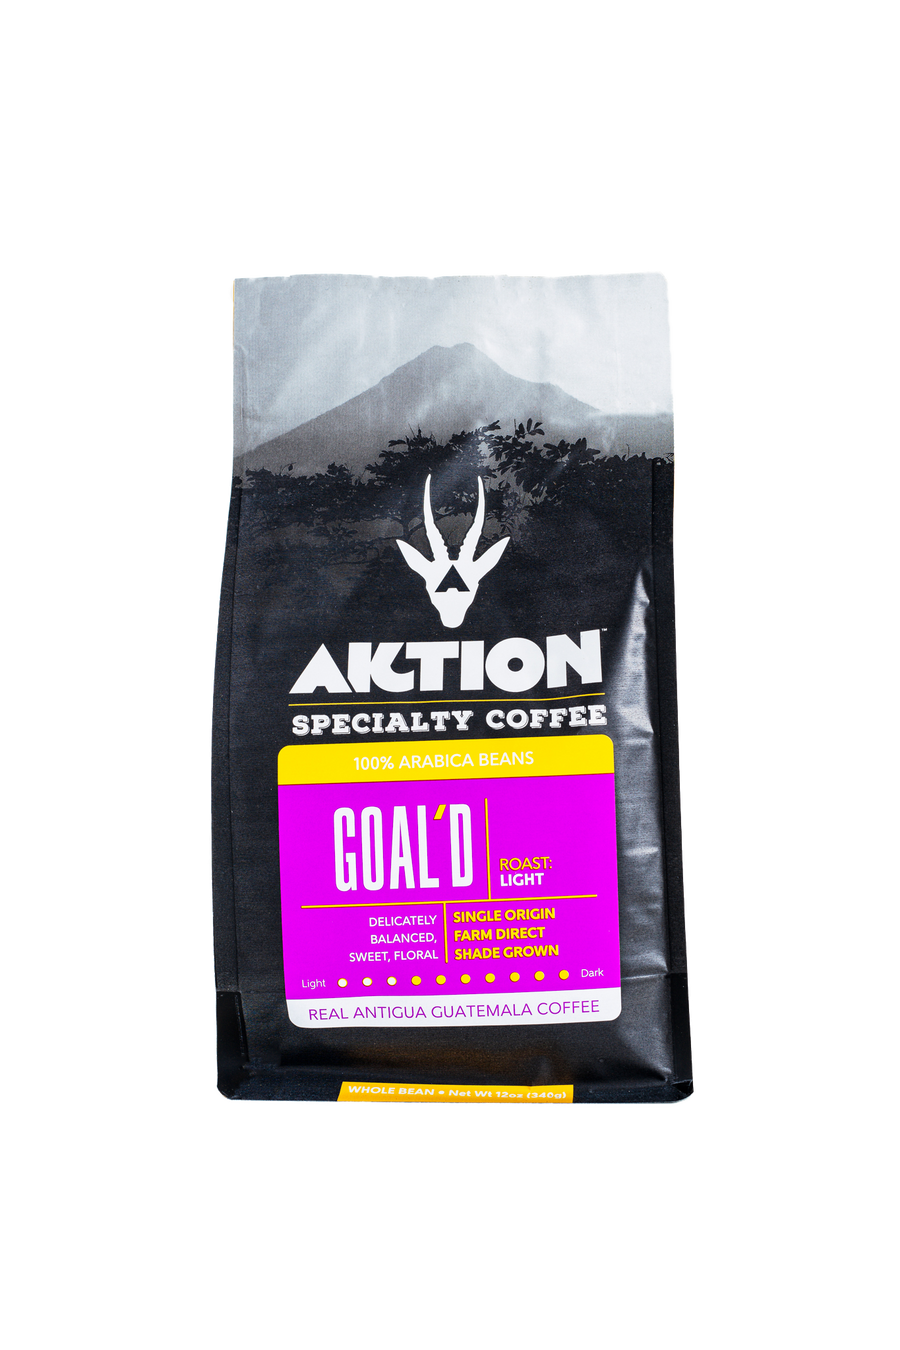 GOAL'D - Light Roast (2 lb. Value Bag)